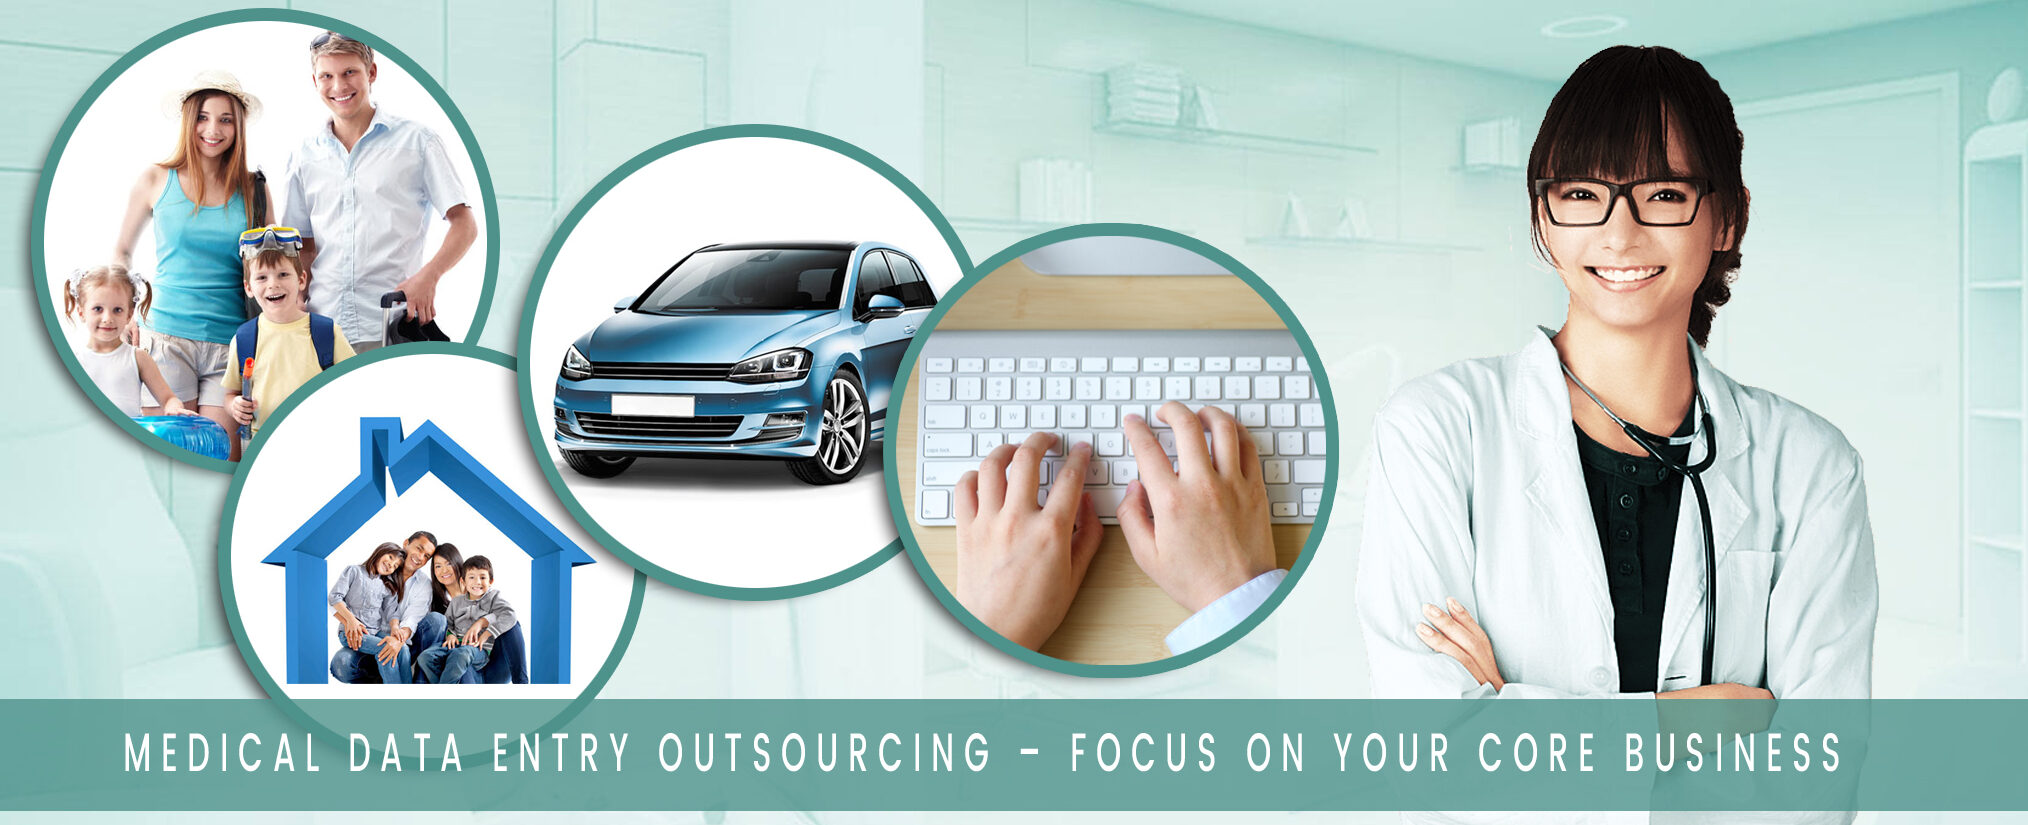 Medical-Data-Entry-Outsourcing-–-Focus-on-your-core-business-copy